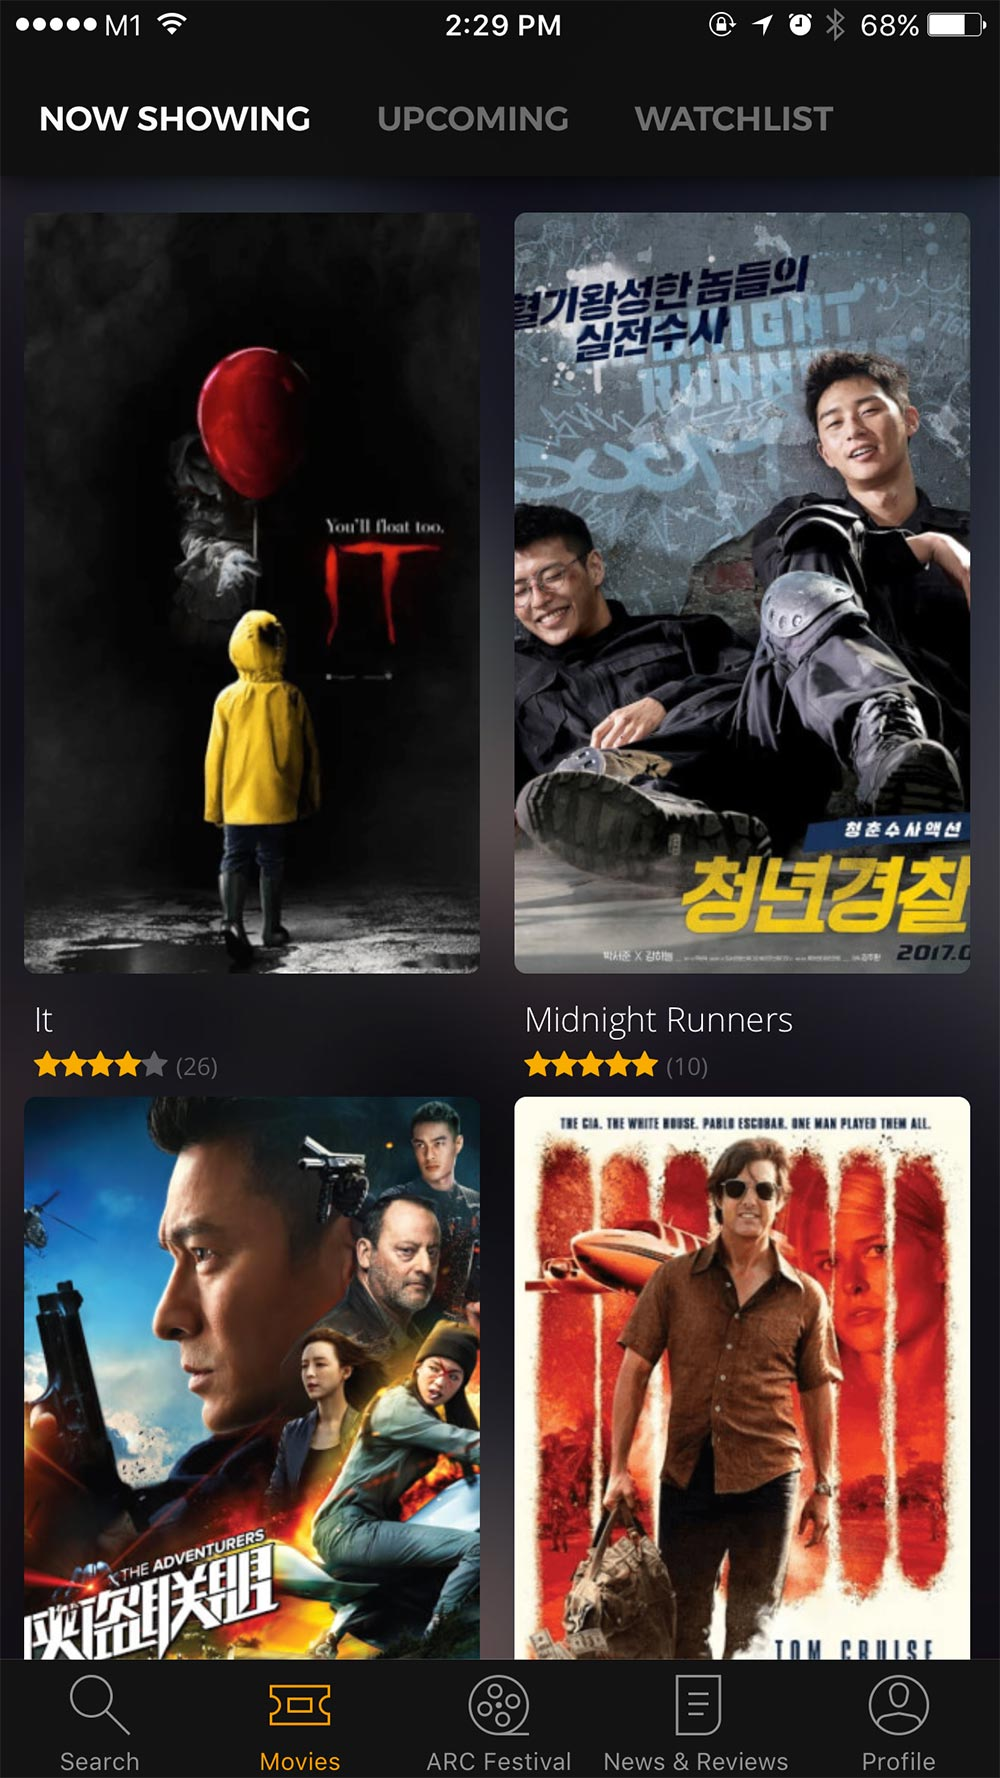 New & Now Showing Movies, Trailers, Reviews | Popcorn